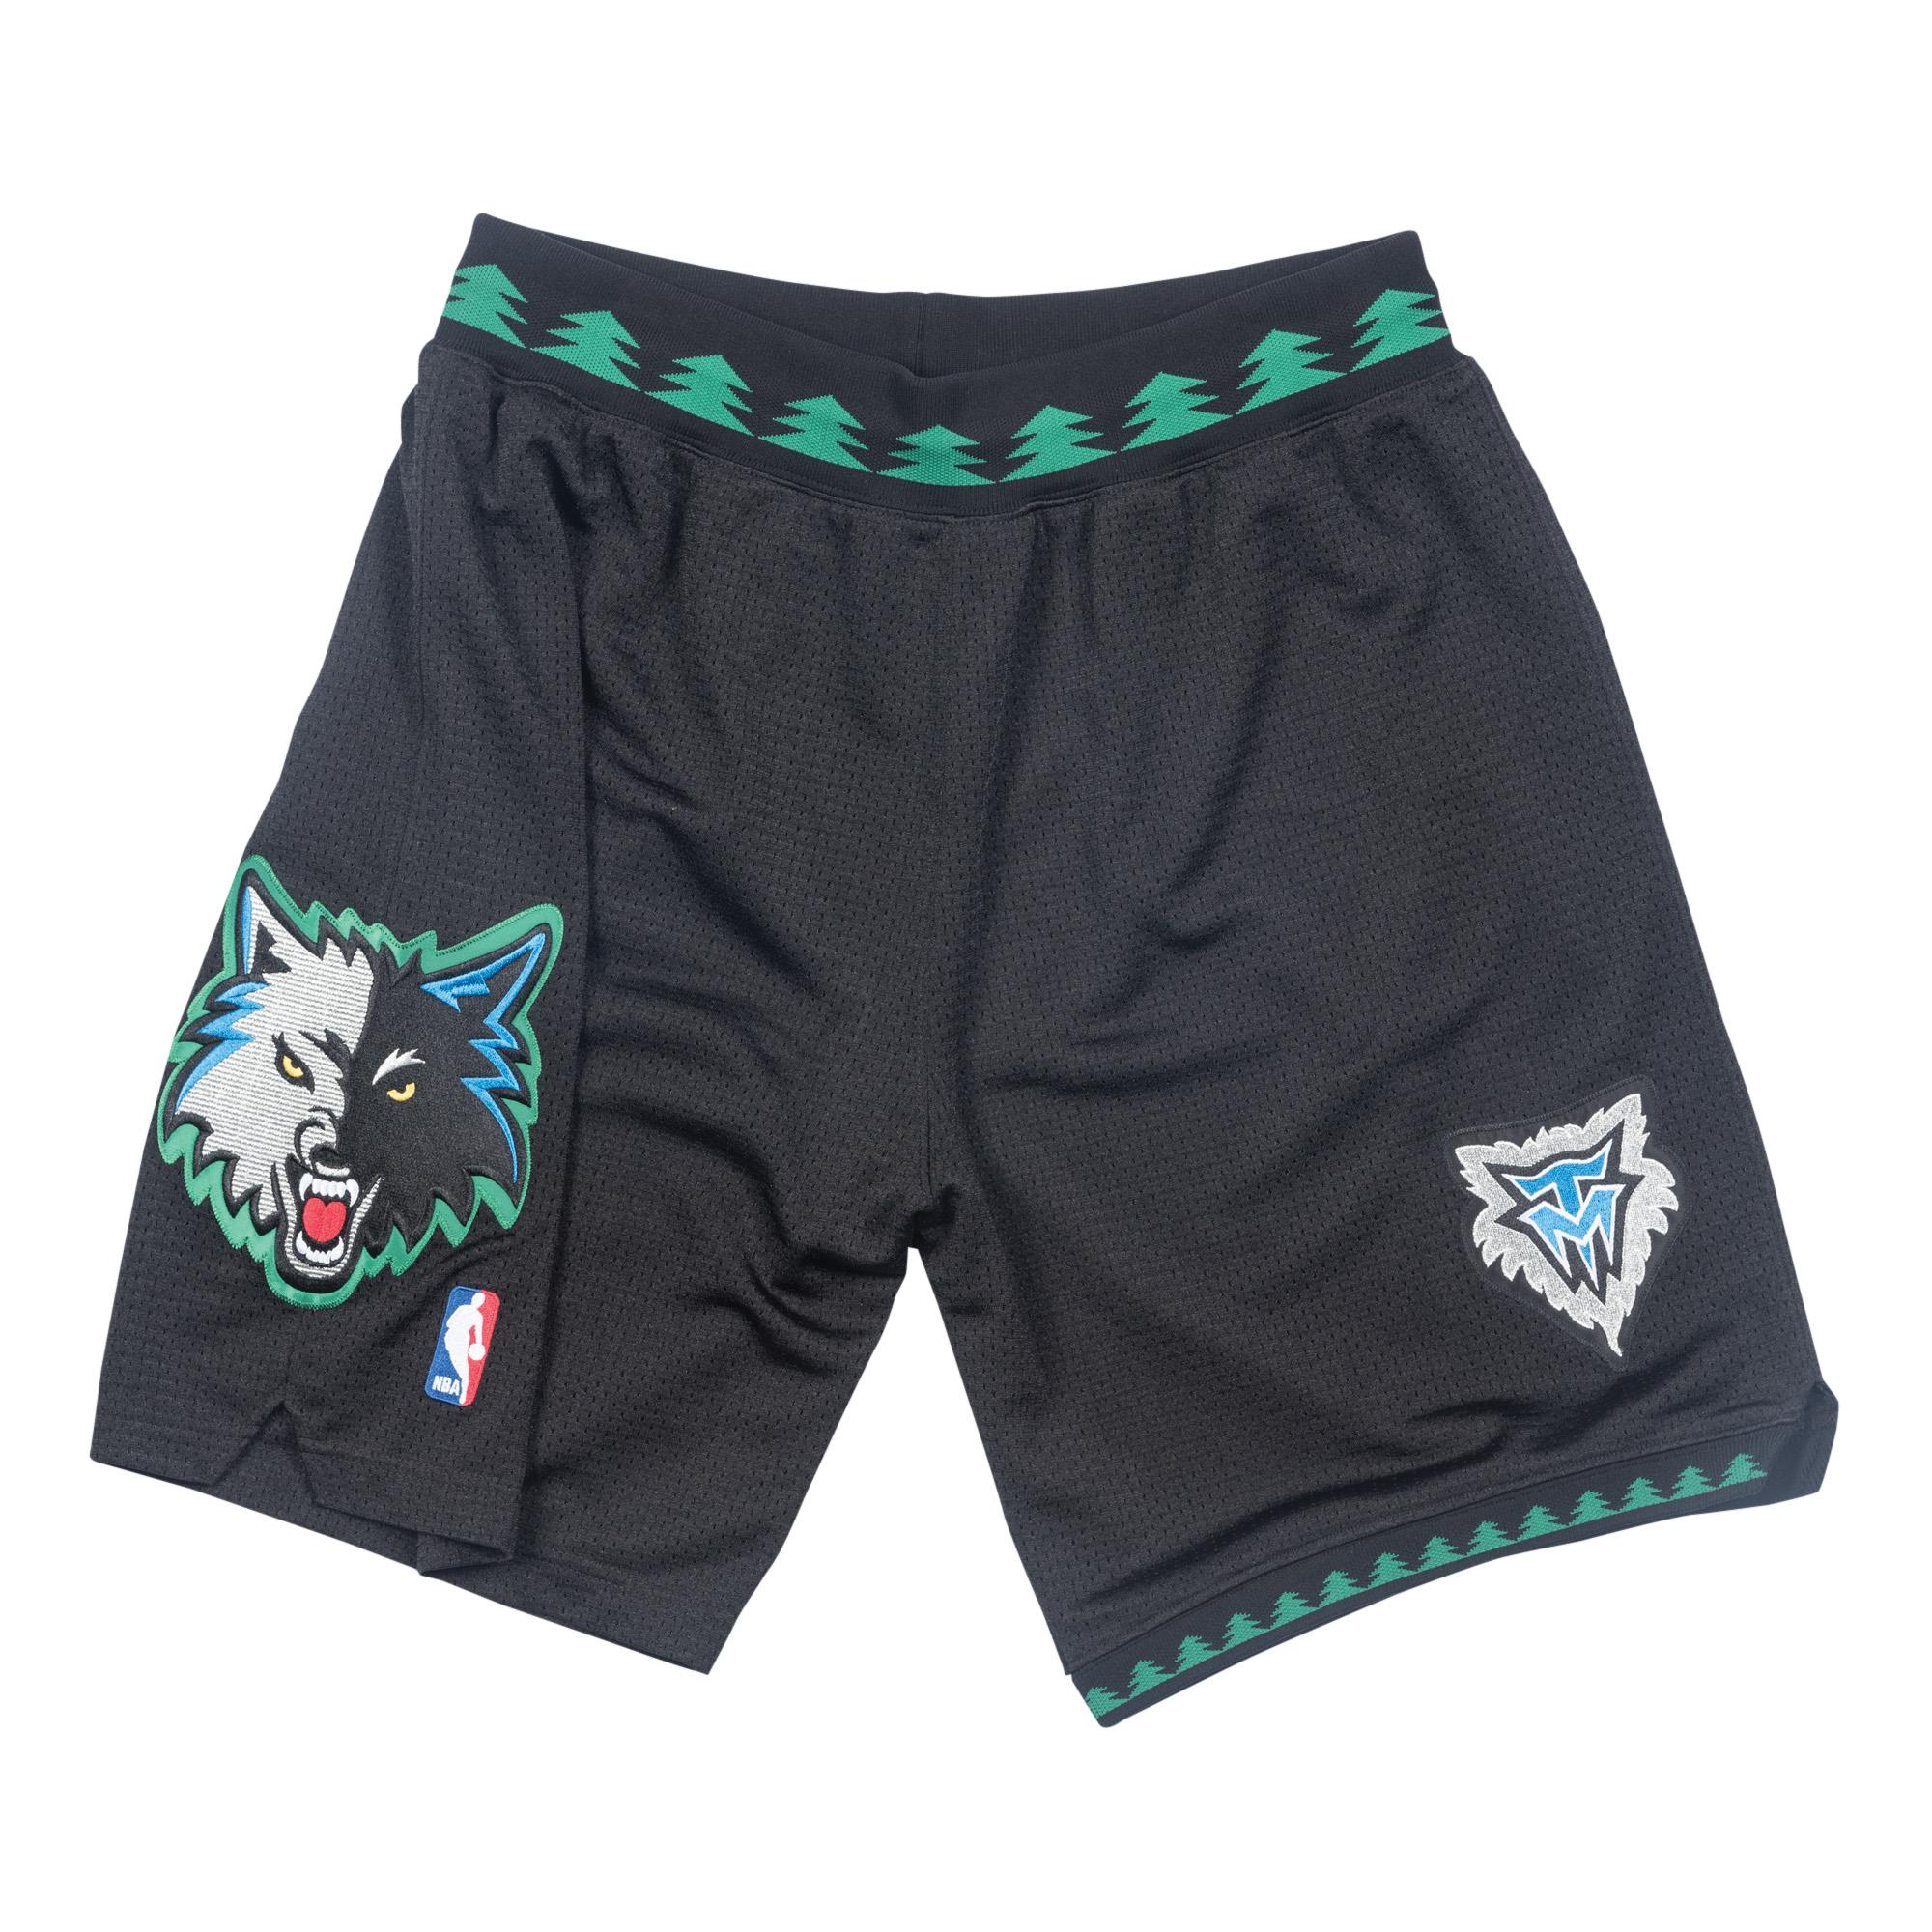 898fe3fa4 Mitchell & Ness | 2003-04 Minnesota Timberwolves Alternate Authentic ...